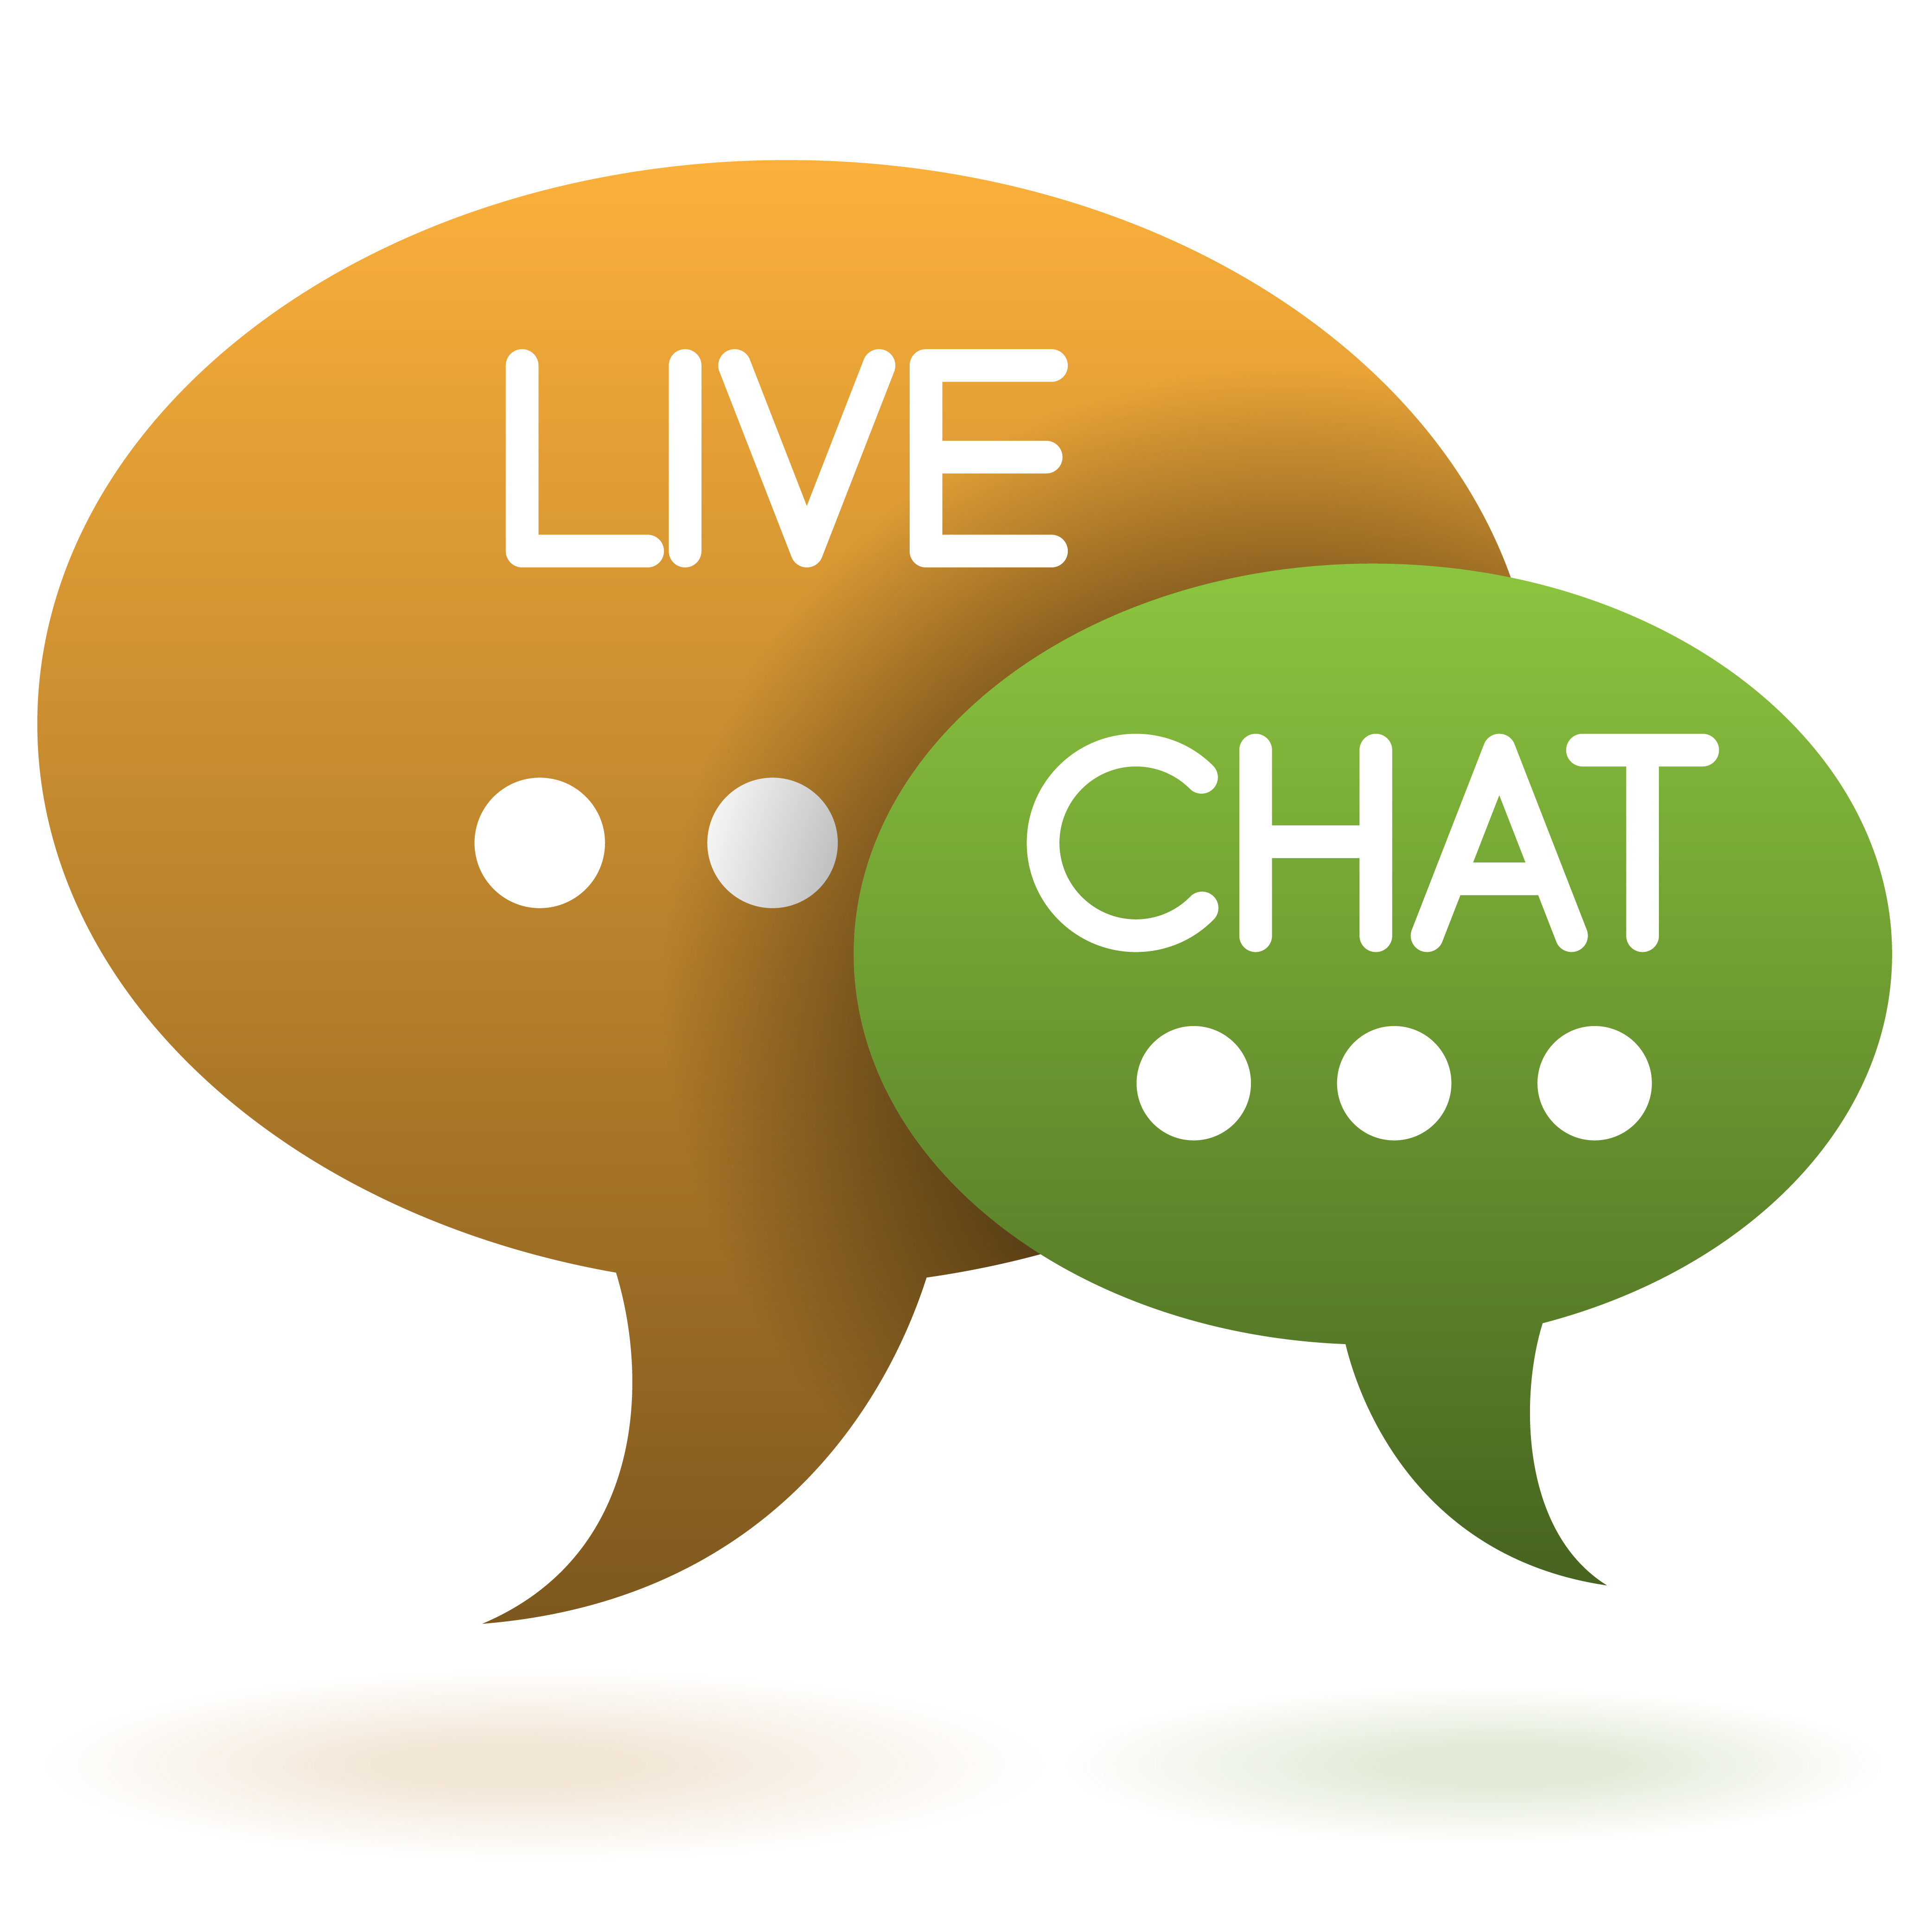 live chat images